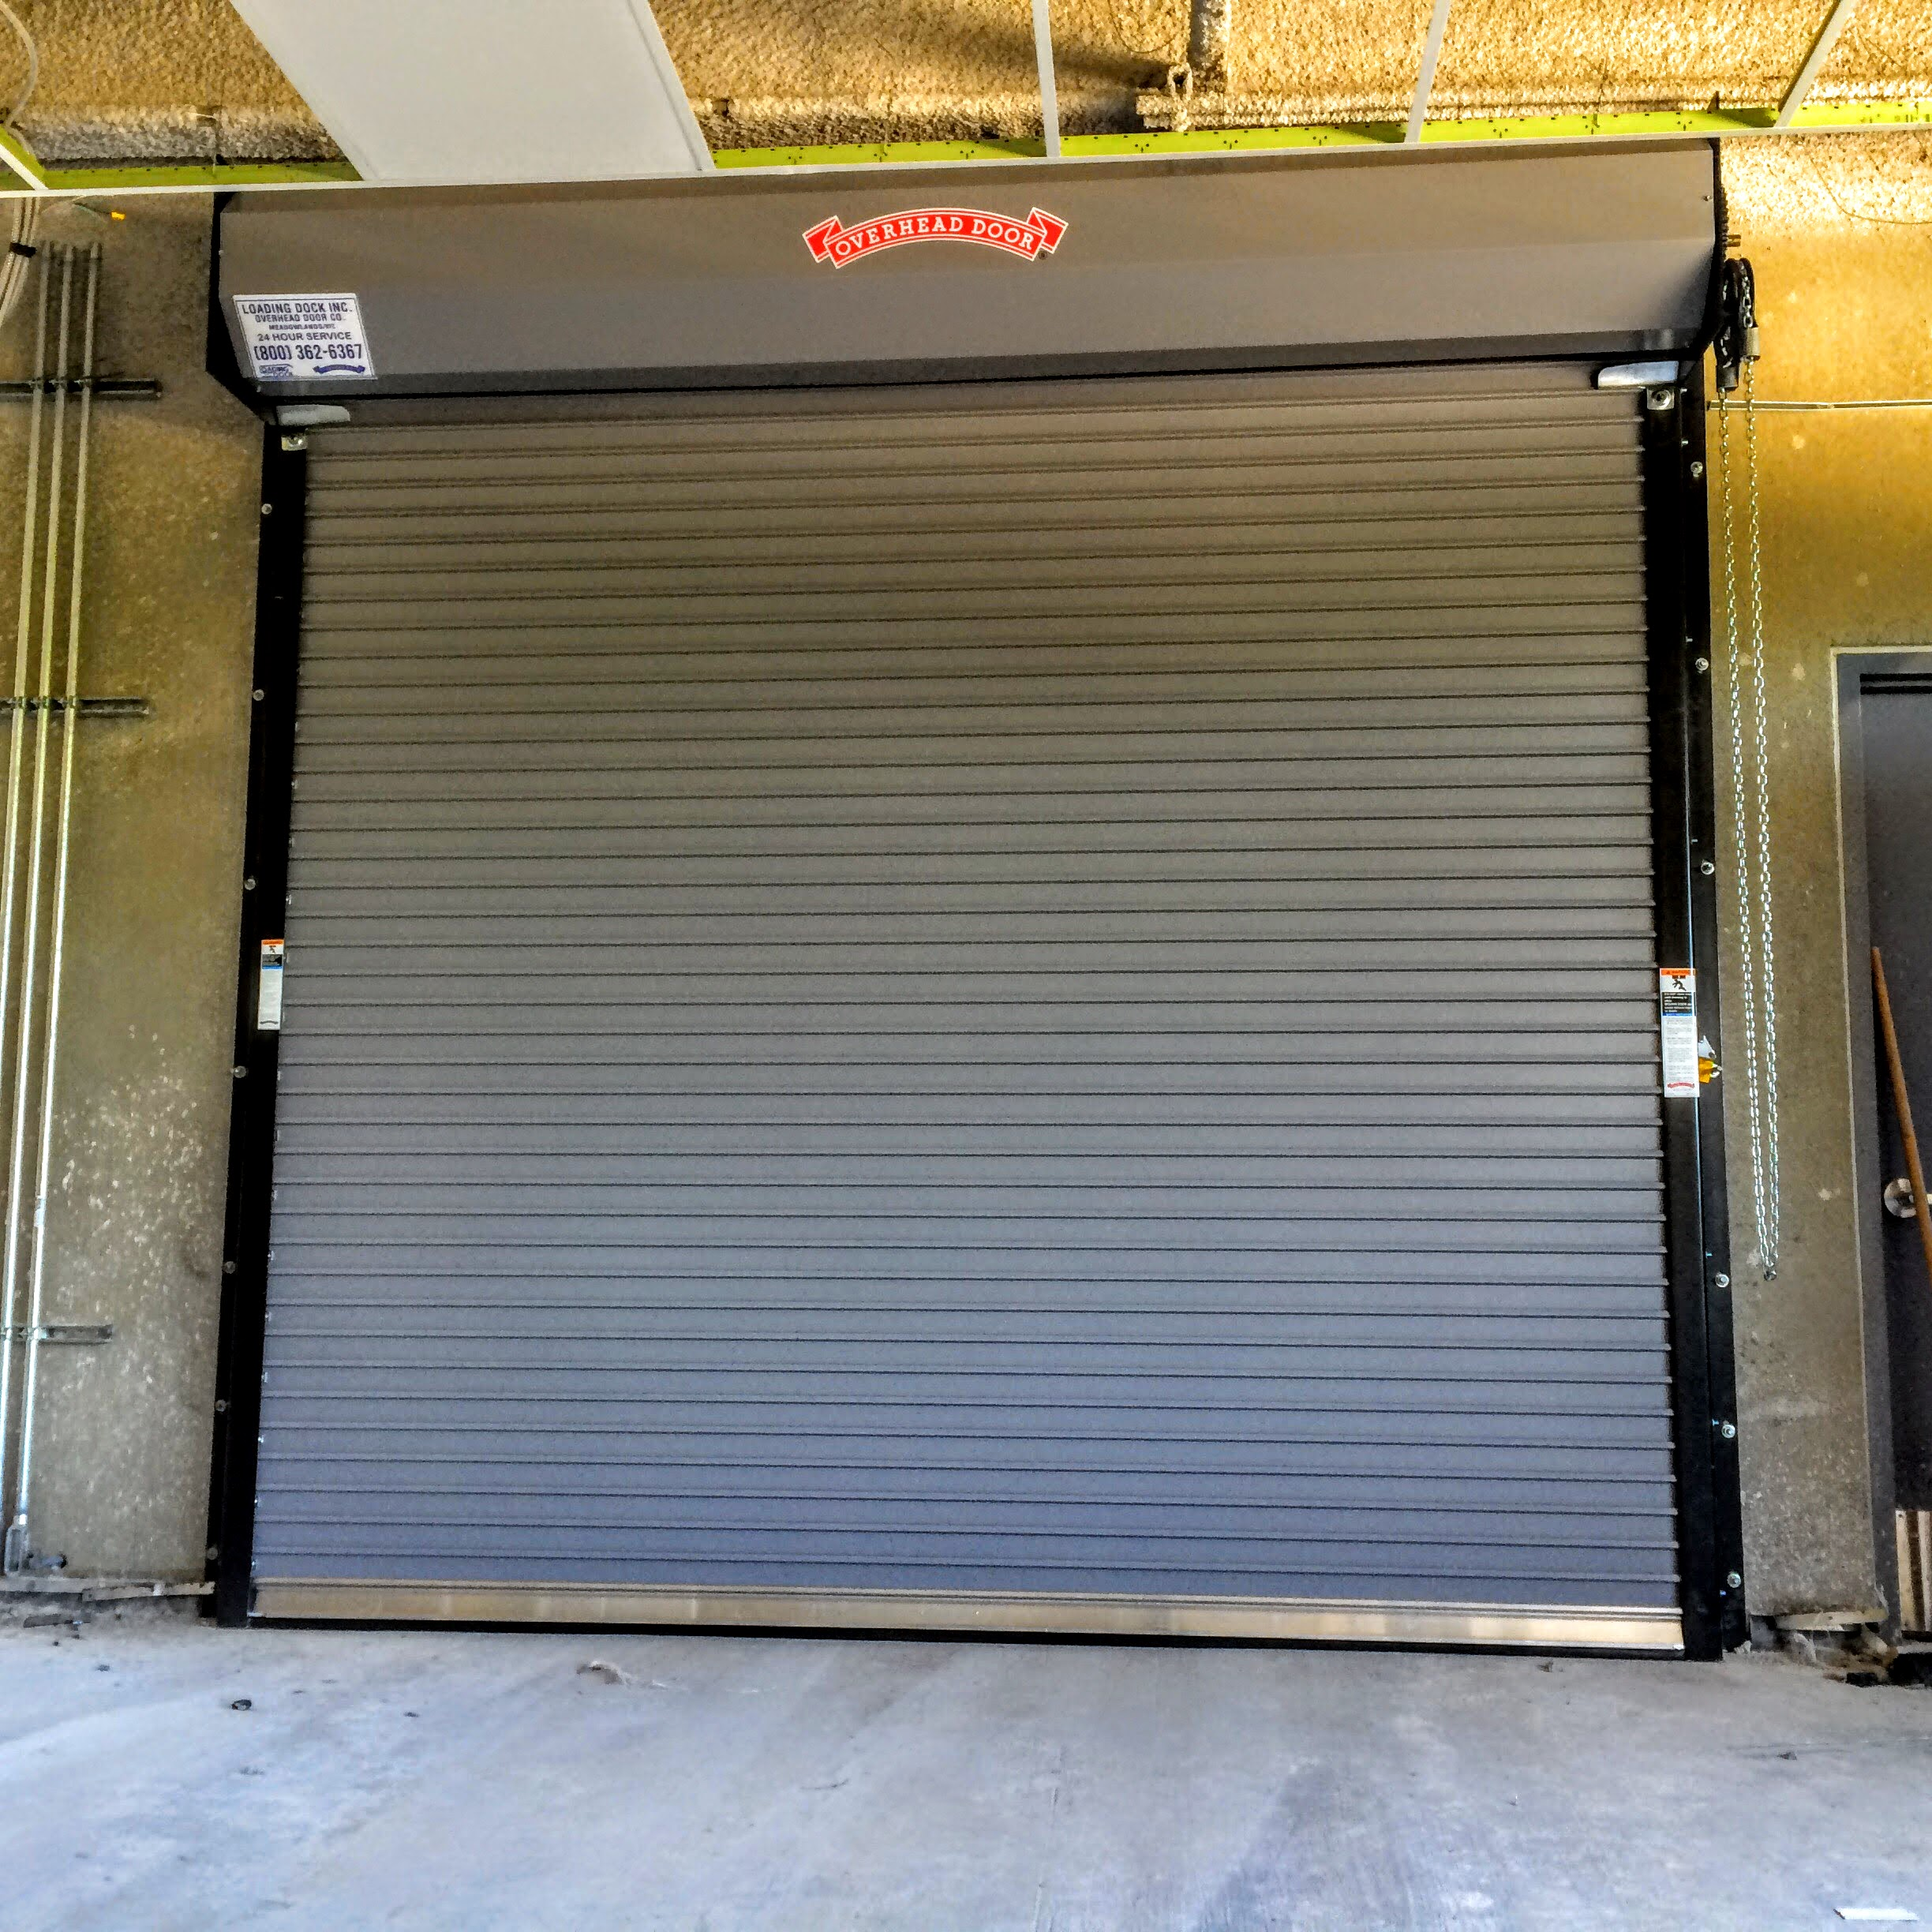 Non-insulated roll down gate with weatherized seals and chain hoist & Rolling Steel Doors pezcame.com